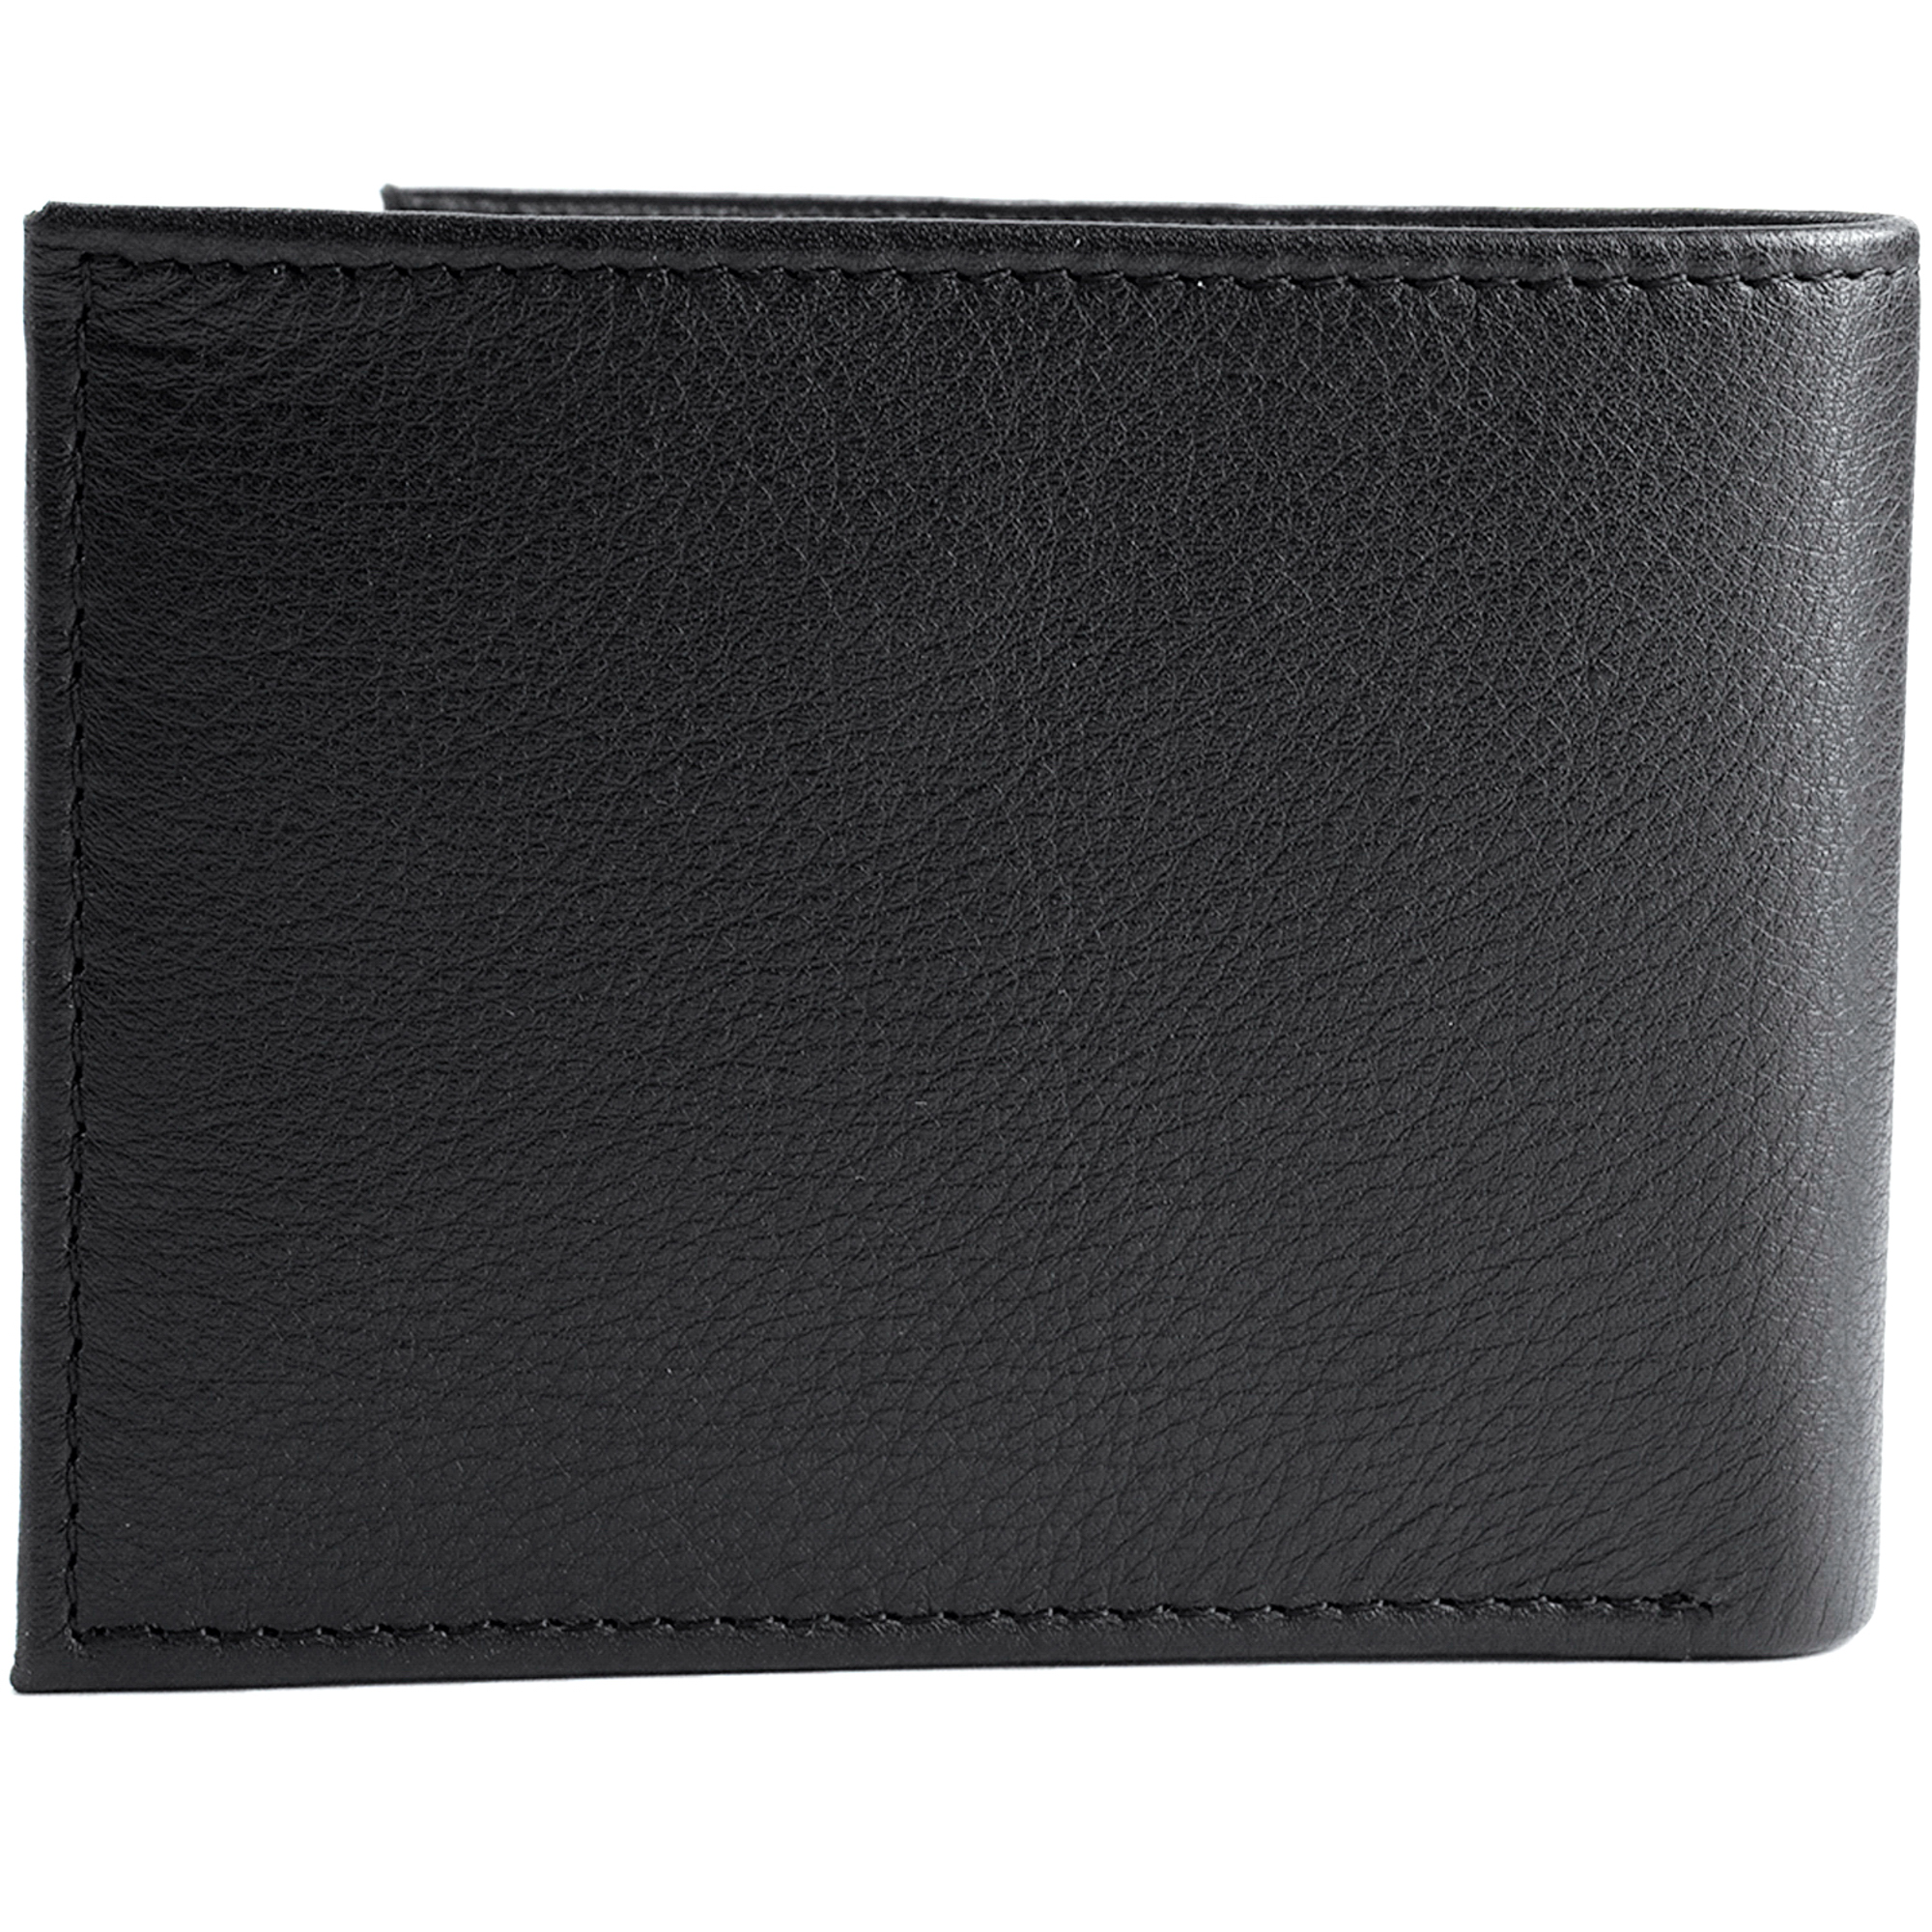 Alpine-Swiss-RFID-Blocking-Mens-Leather-Bifold-Wallet-Removable-ID-Card-Passcase thumbnail 17